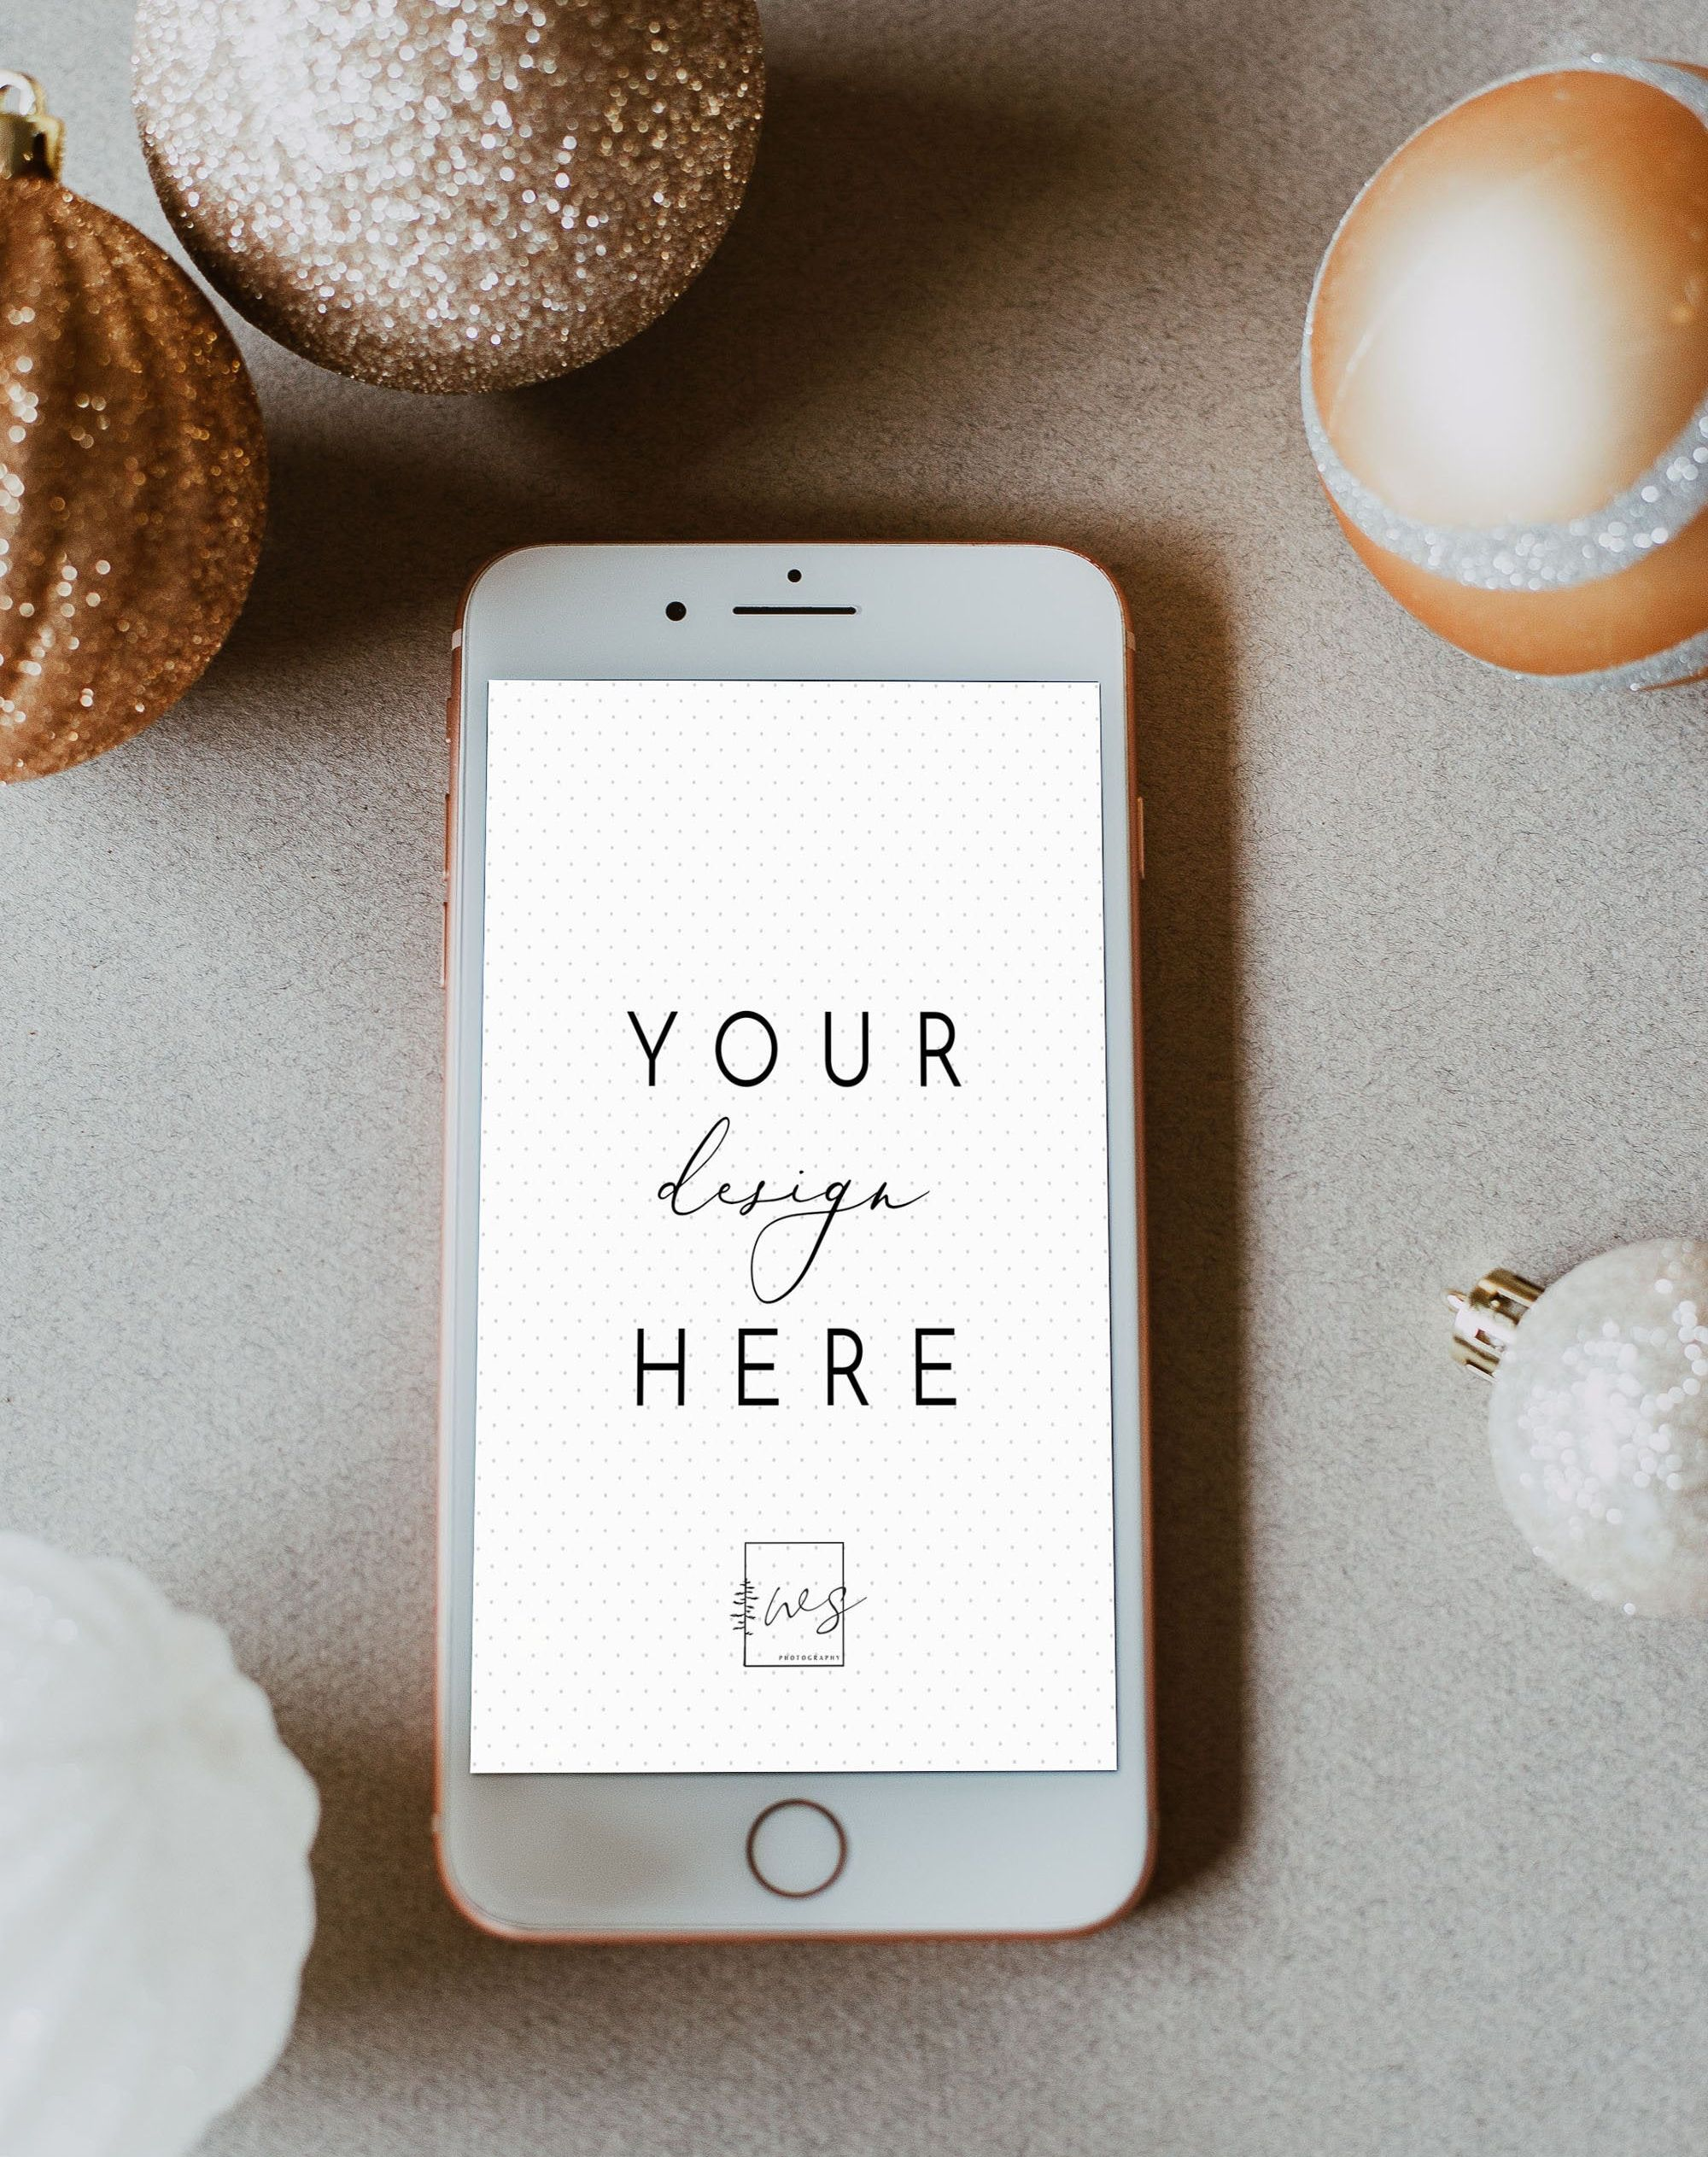 Download Mockup Iphone Instagram Yellow Images